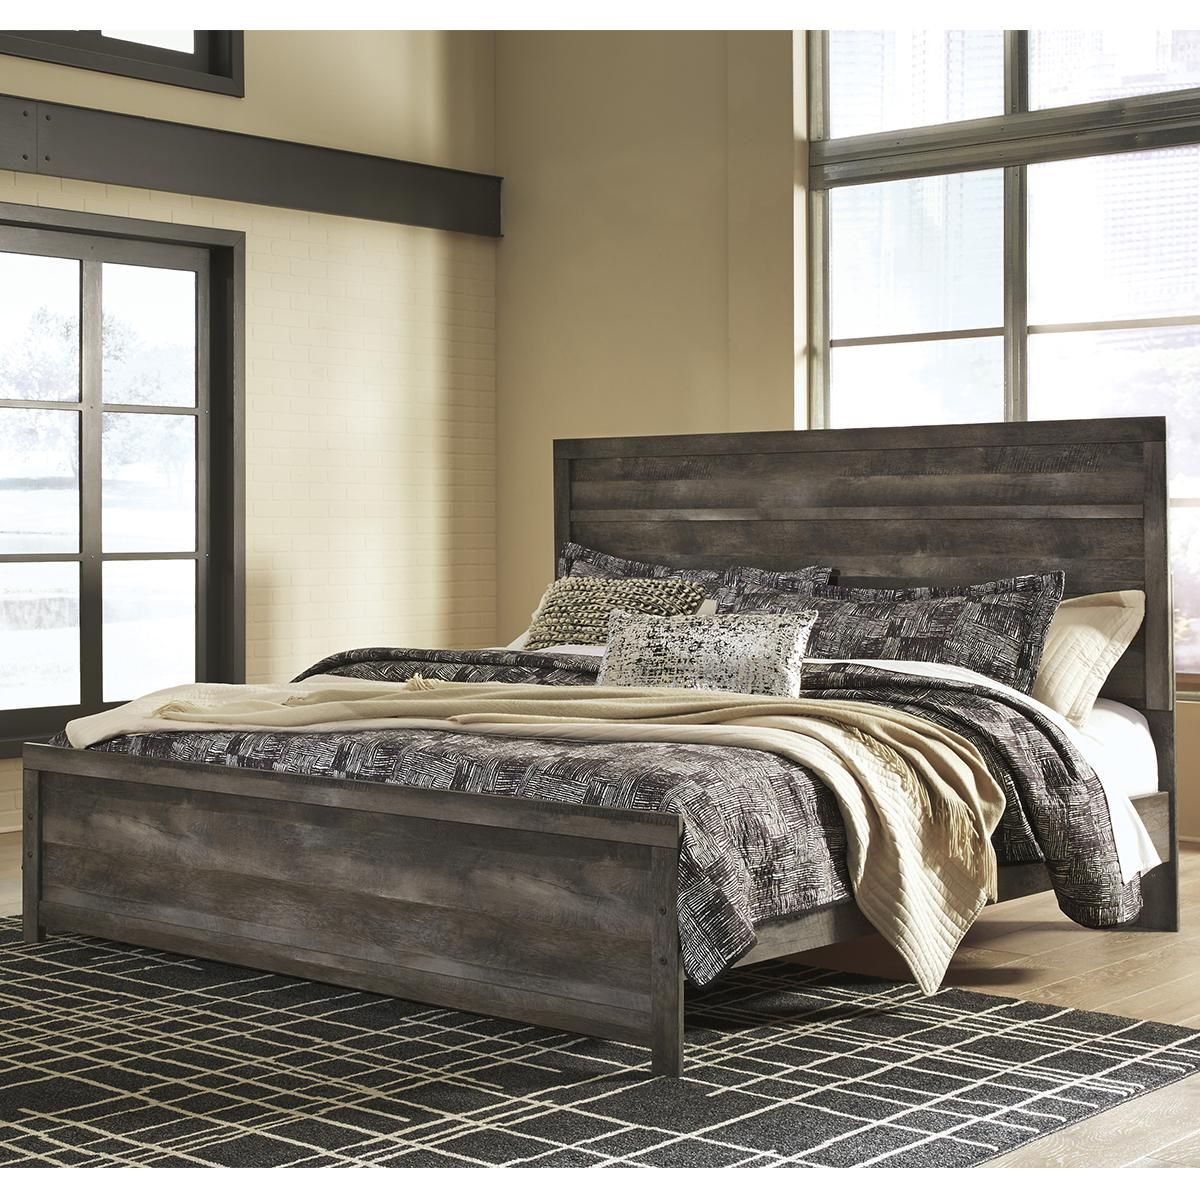 Signature Design by Ashley Wynnlow King Panel Bed in Gray